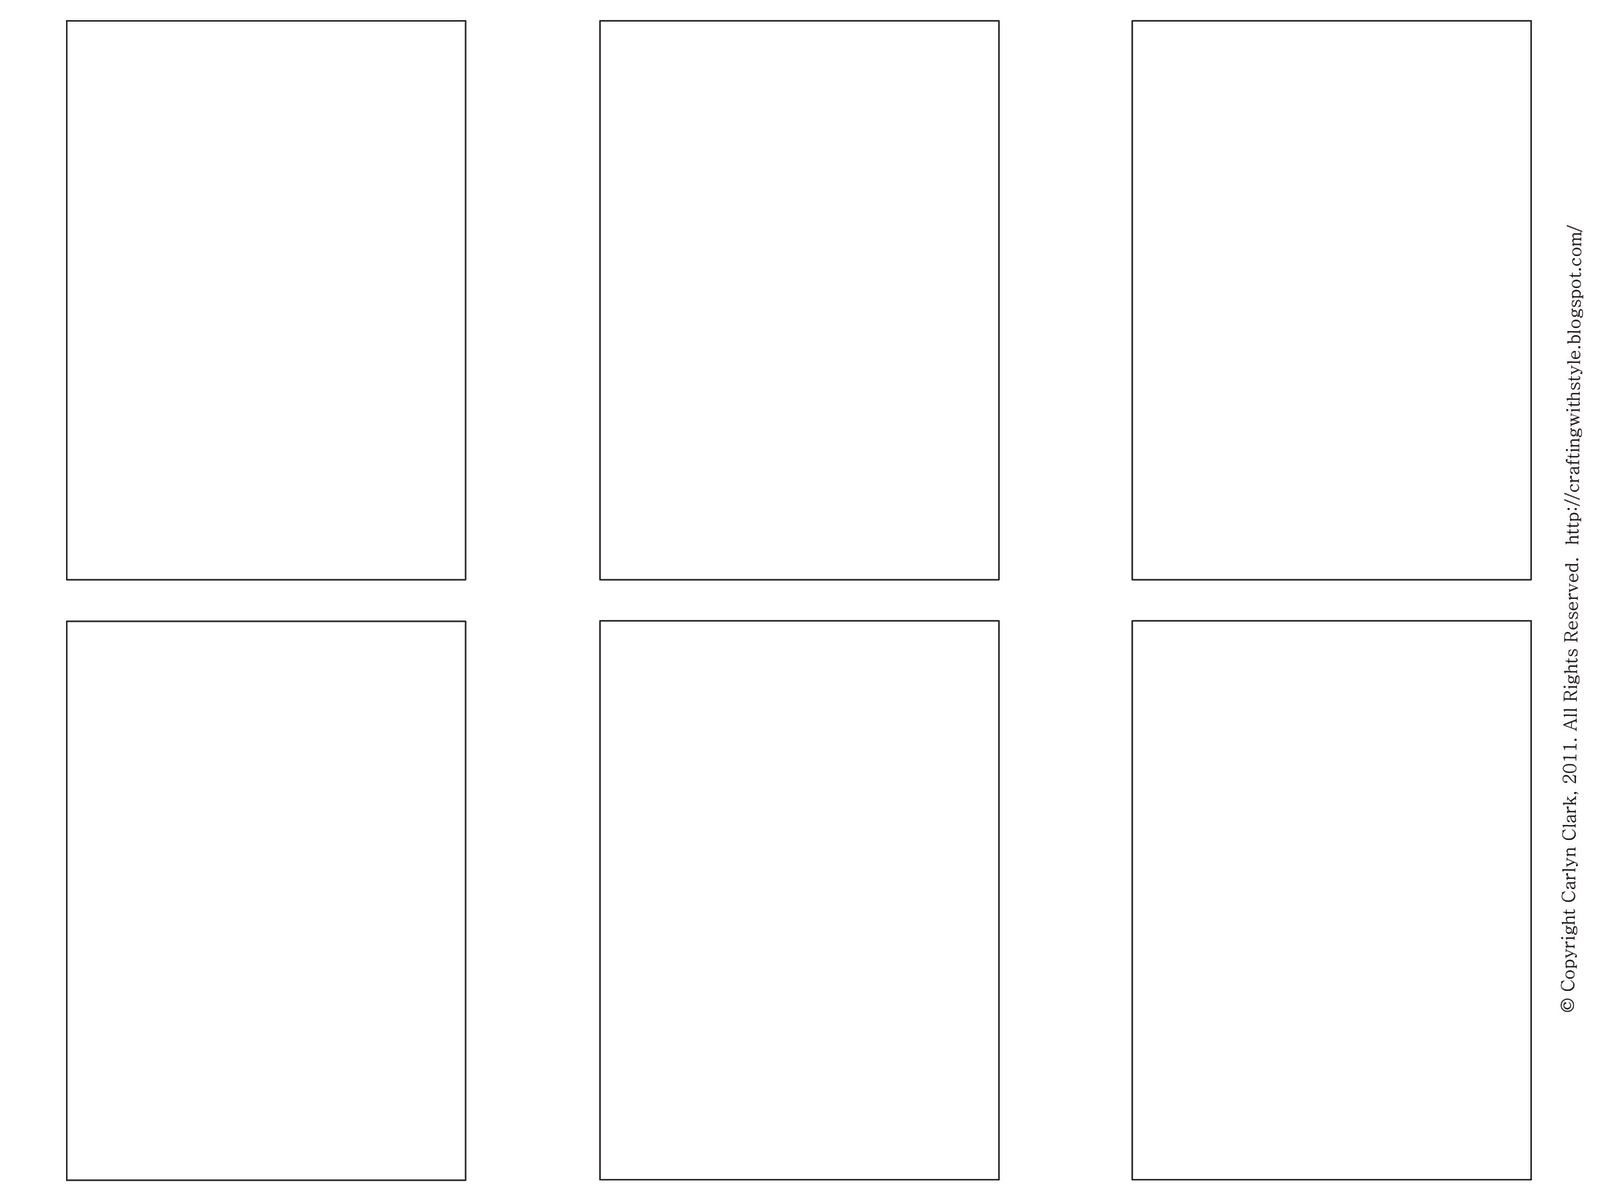 Crafting With Style Free Atc Templates And Artwork For Atc S Trading Card Template Blank Playing Cards Free Printable Card Templates Business card template free printable